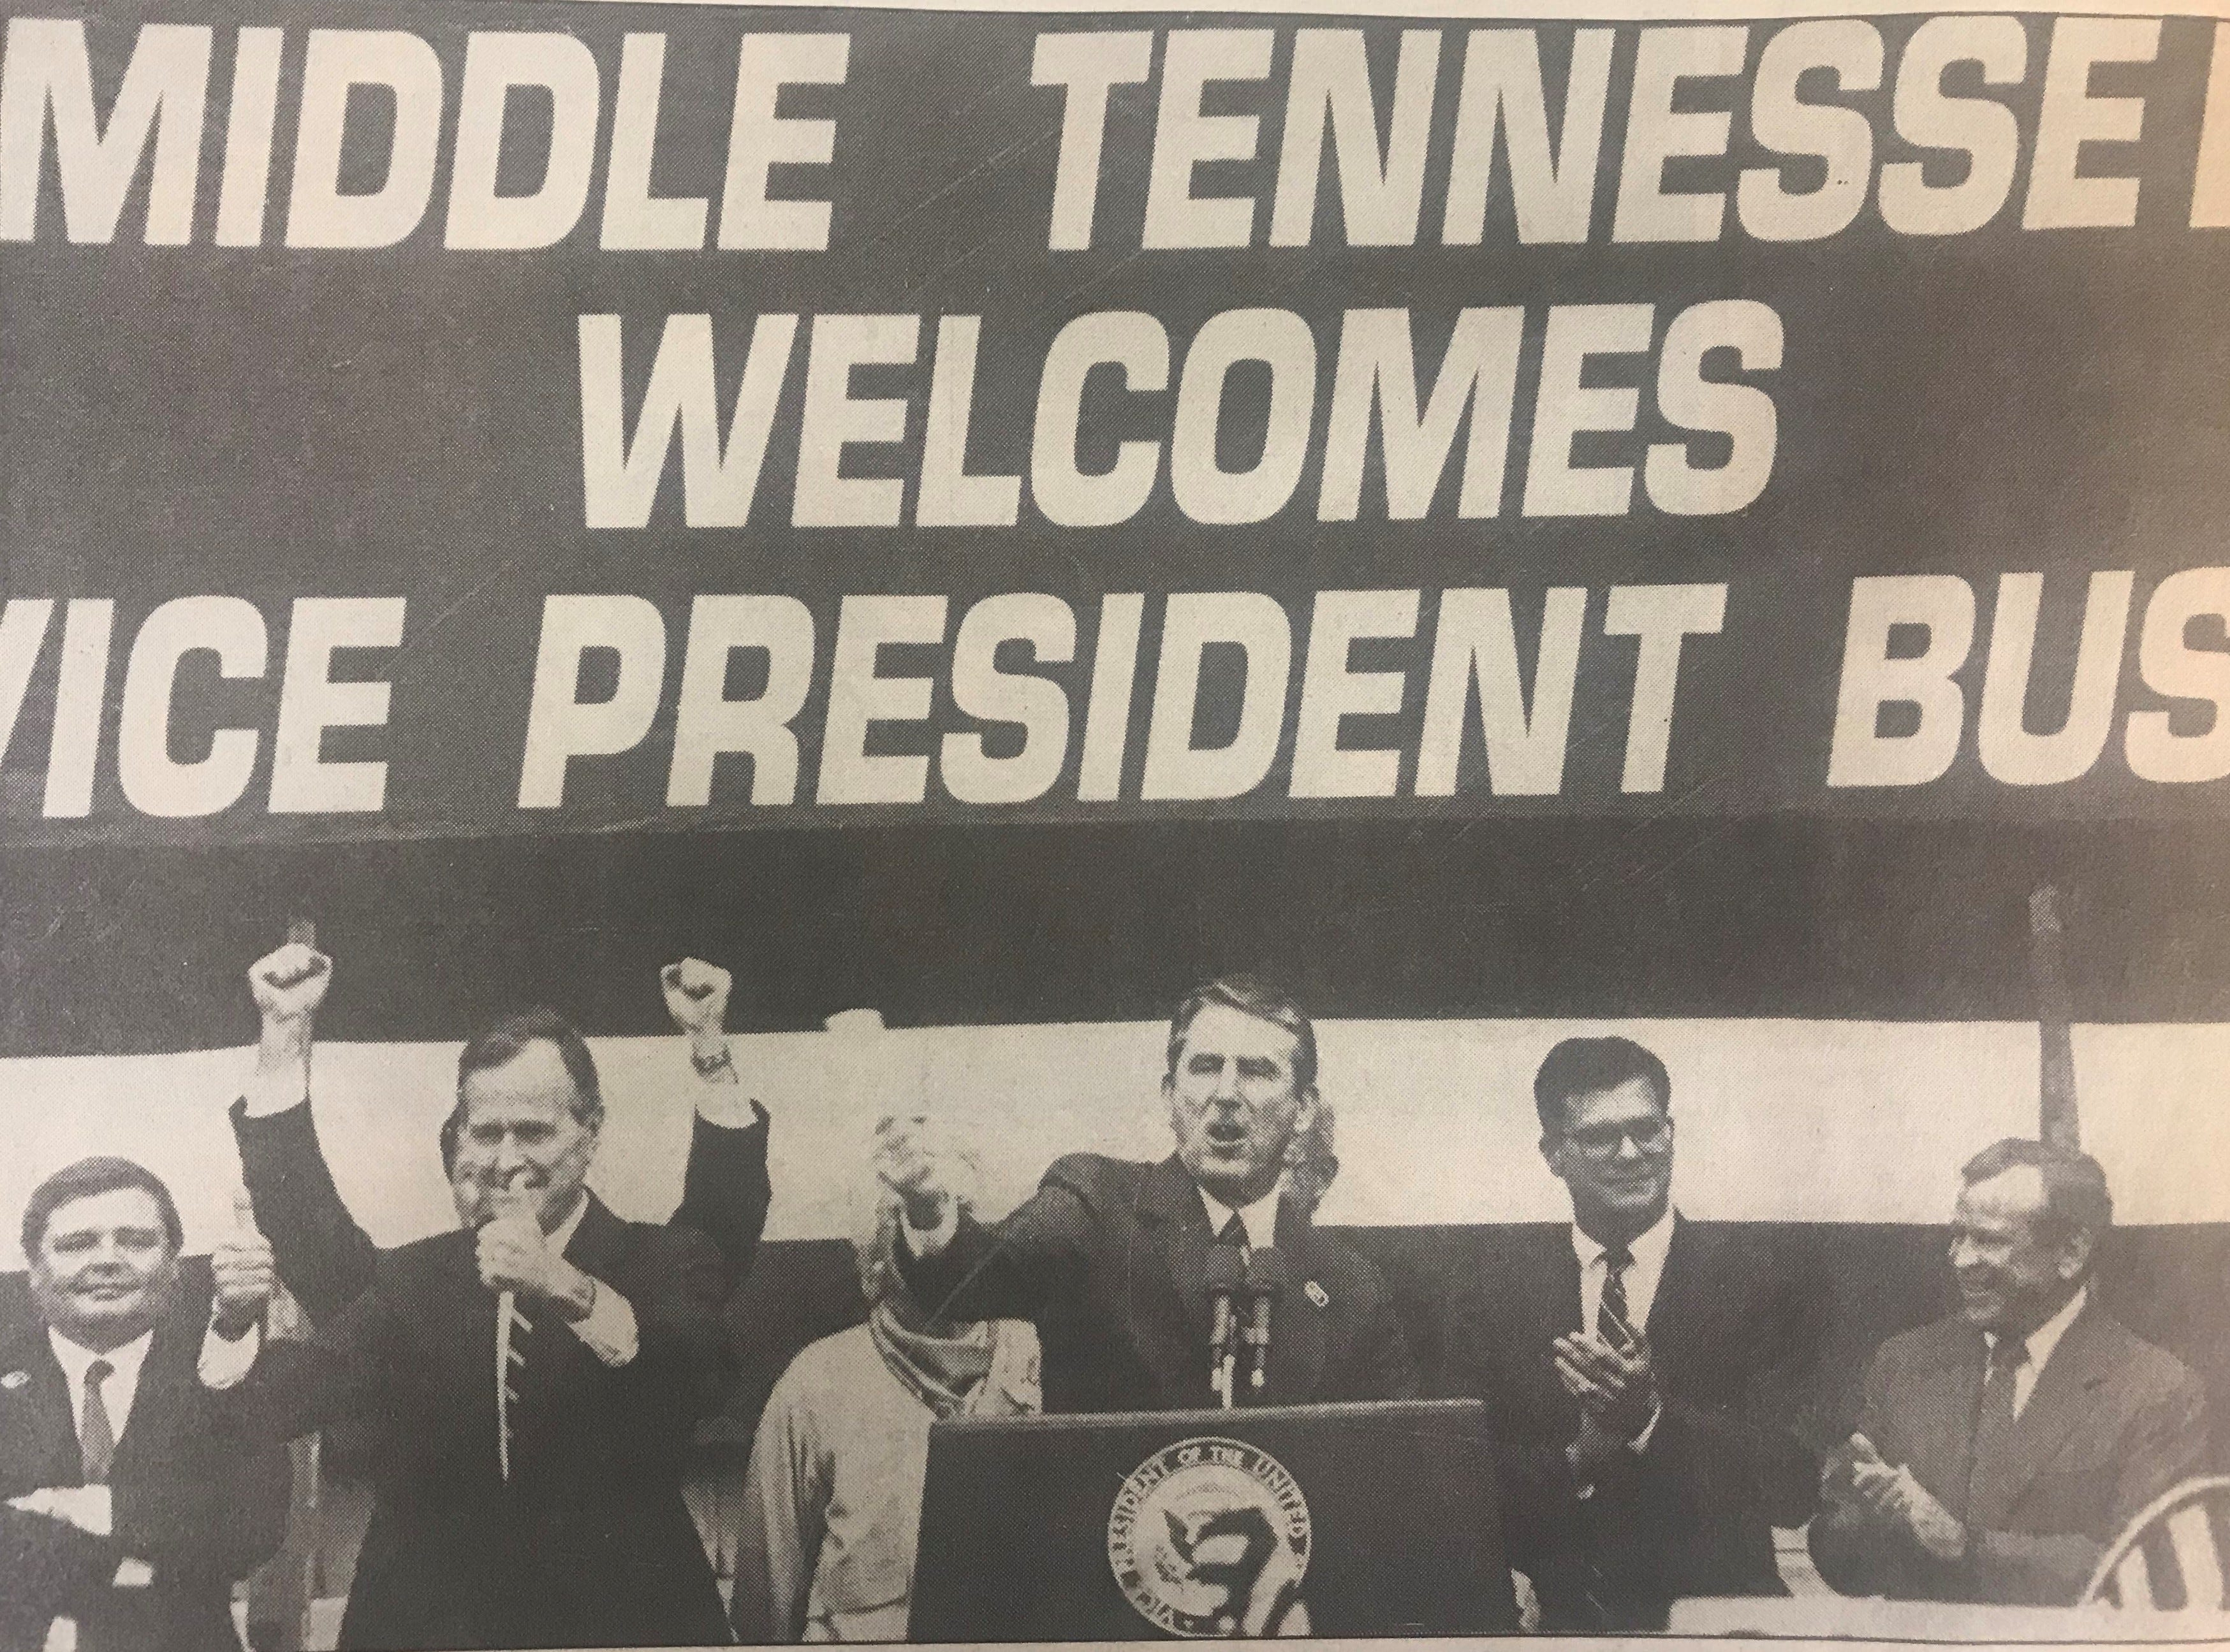 In this Aug. 29, 1988 photo, Vice President George H.W. Bush addresses a crowd of 5,000 at MTSU in Murfreesboro, Tenn.